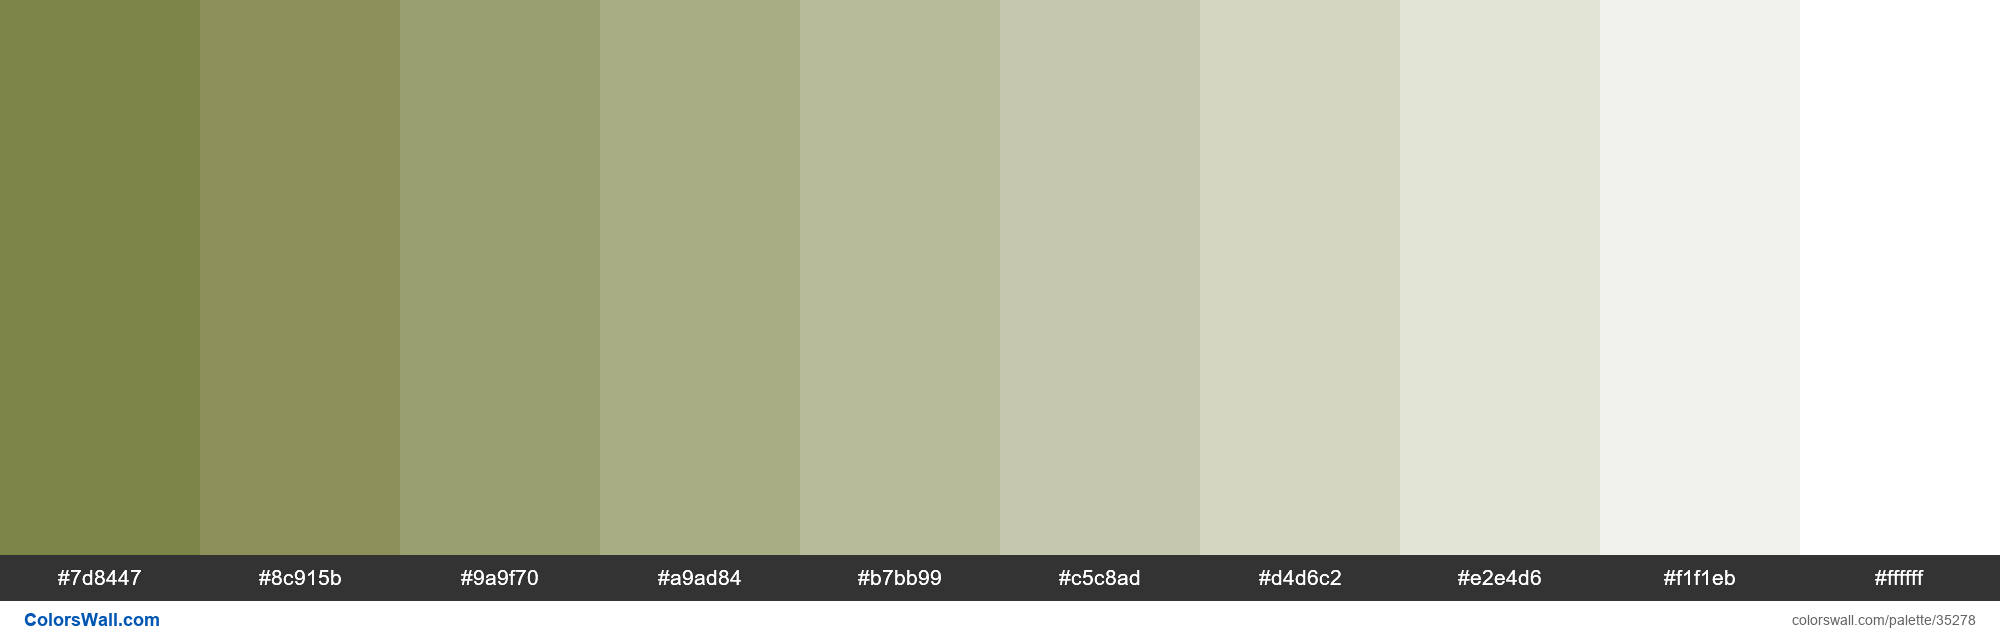 Tints XKCD Color olive drab #6f7632 hex - #35278